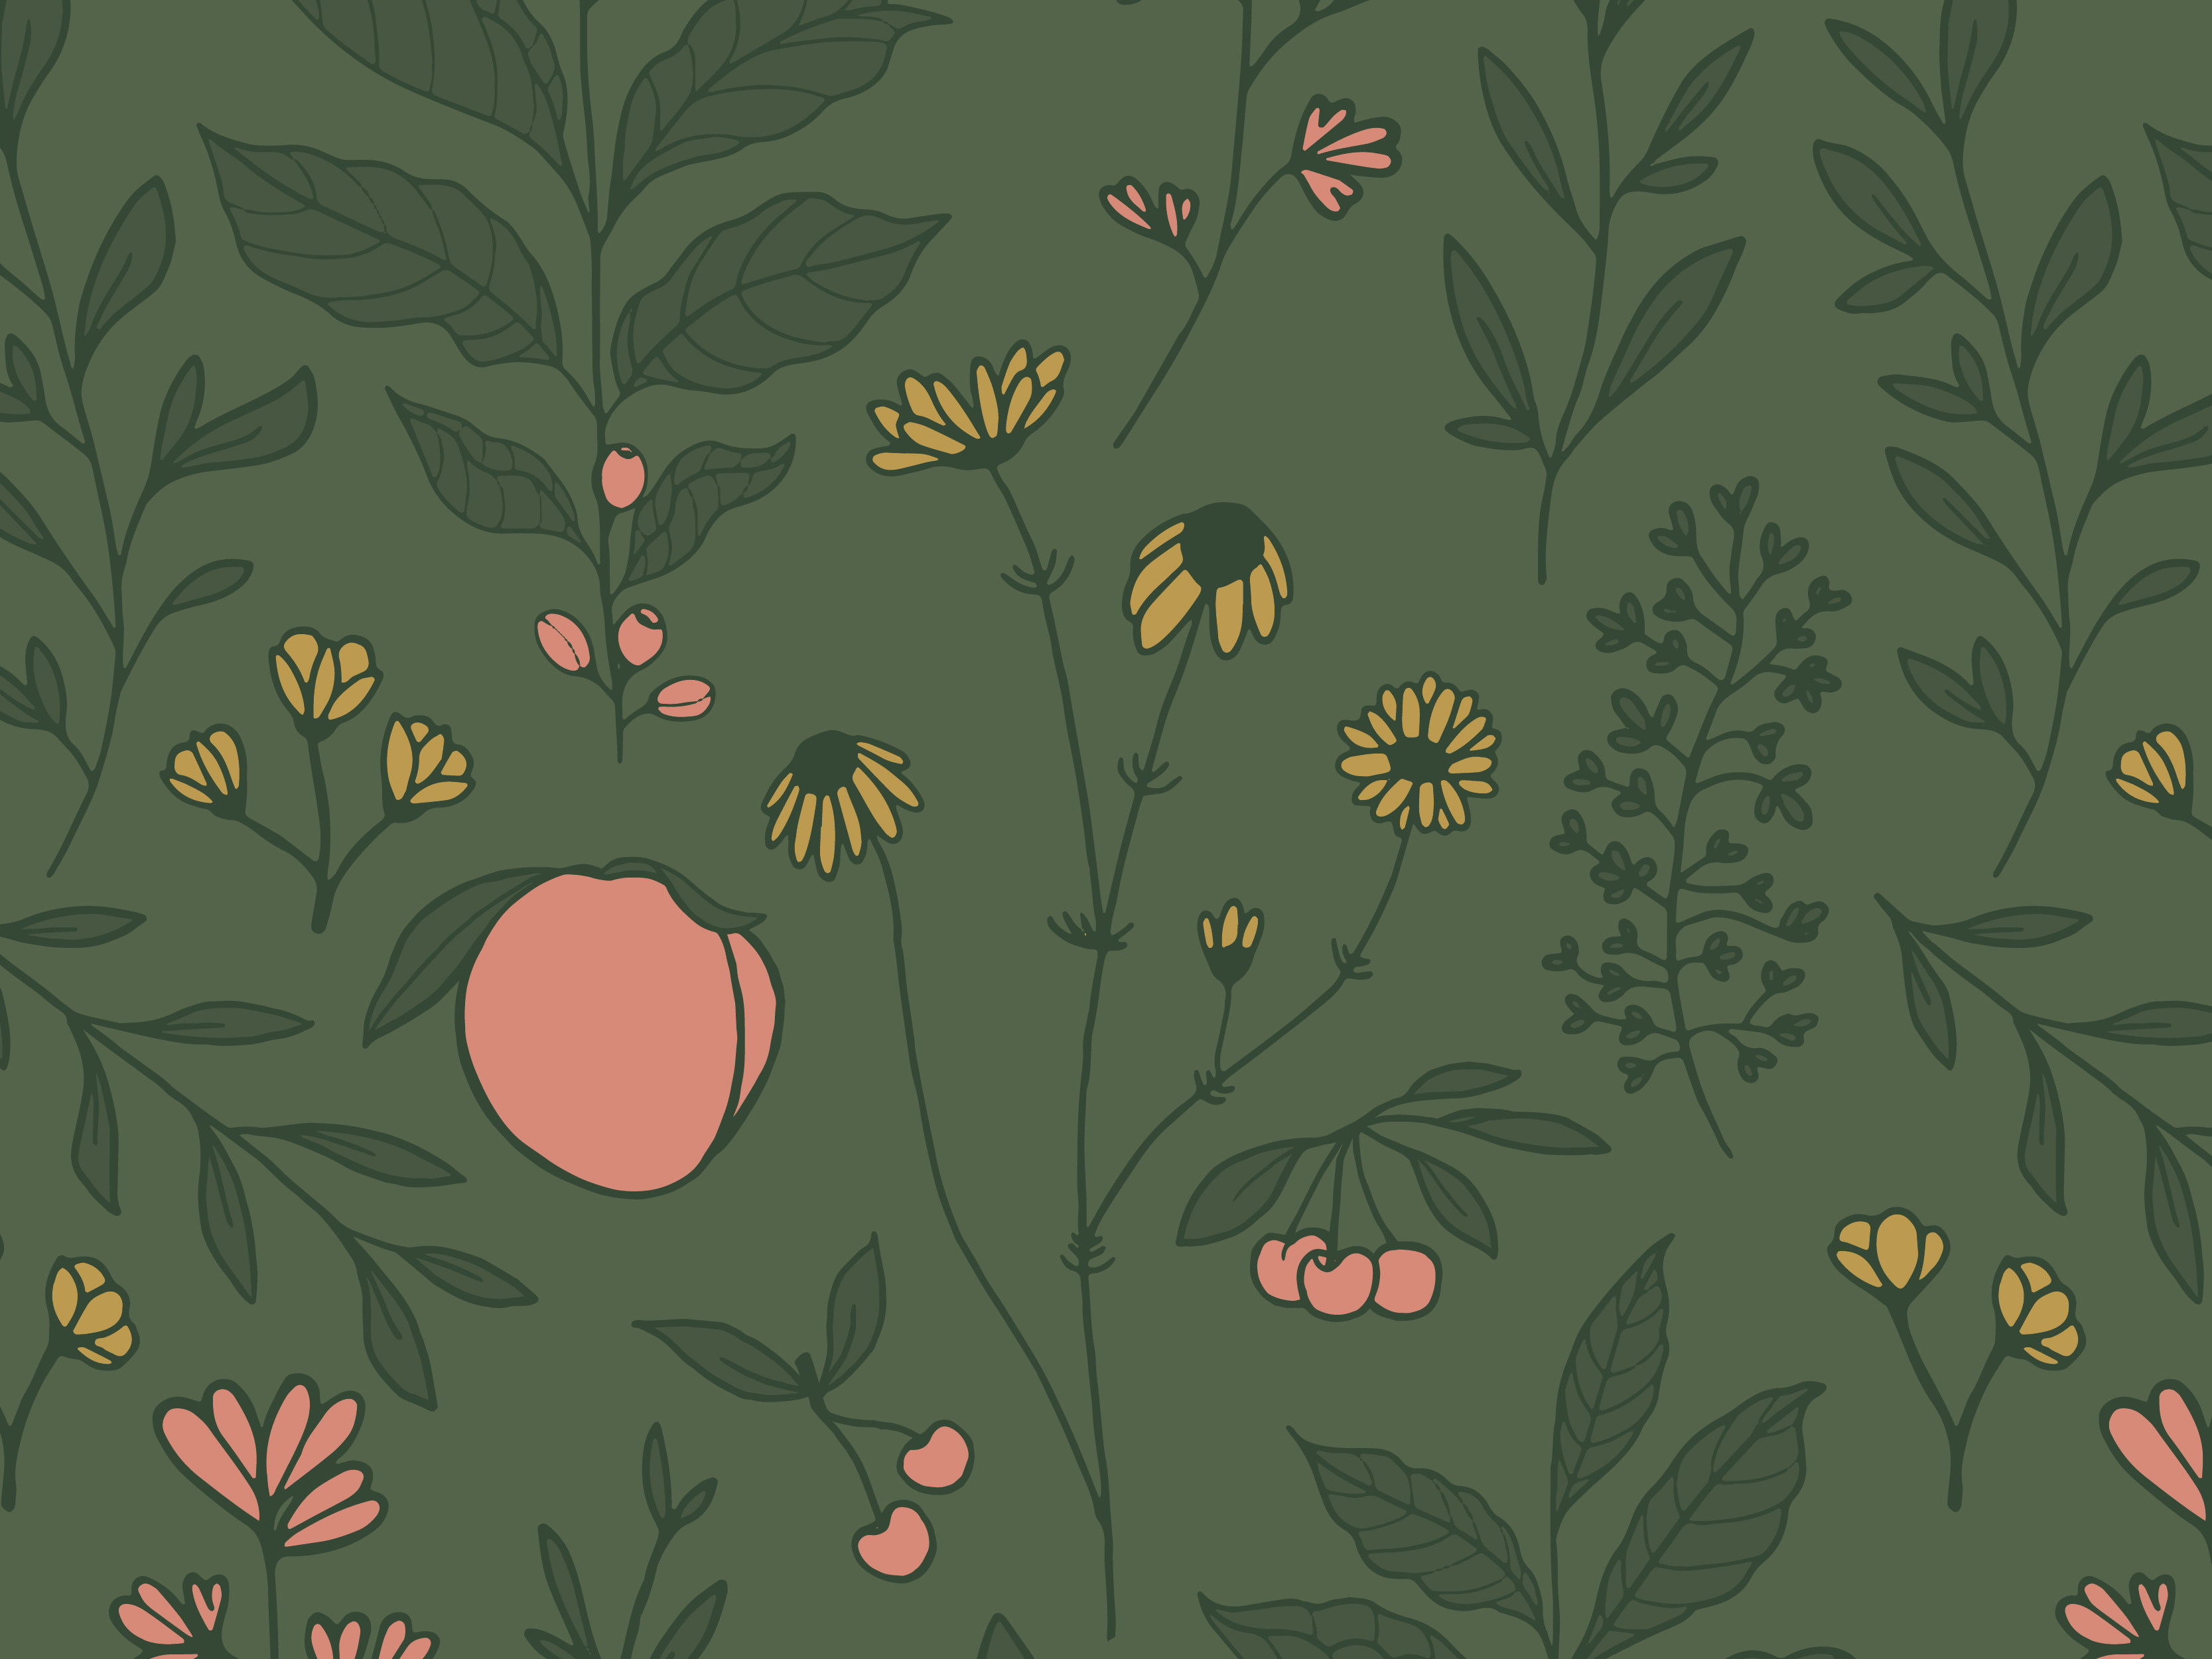 Spring floral pattern illustration created for Brewpoint Coffee's spring blend – The Botanist.